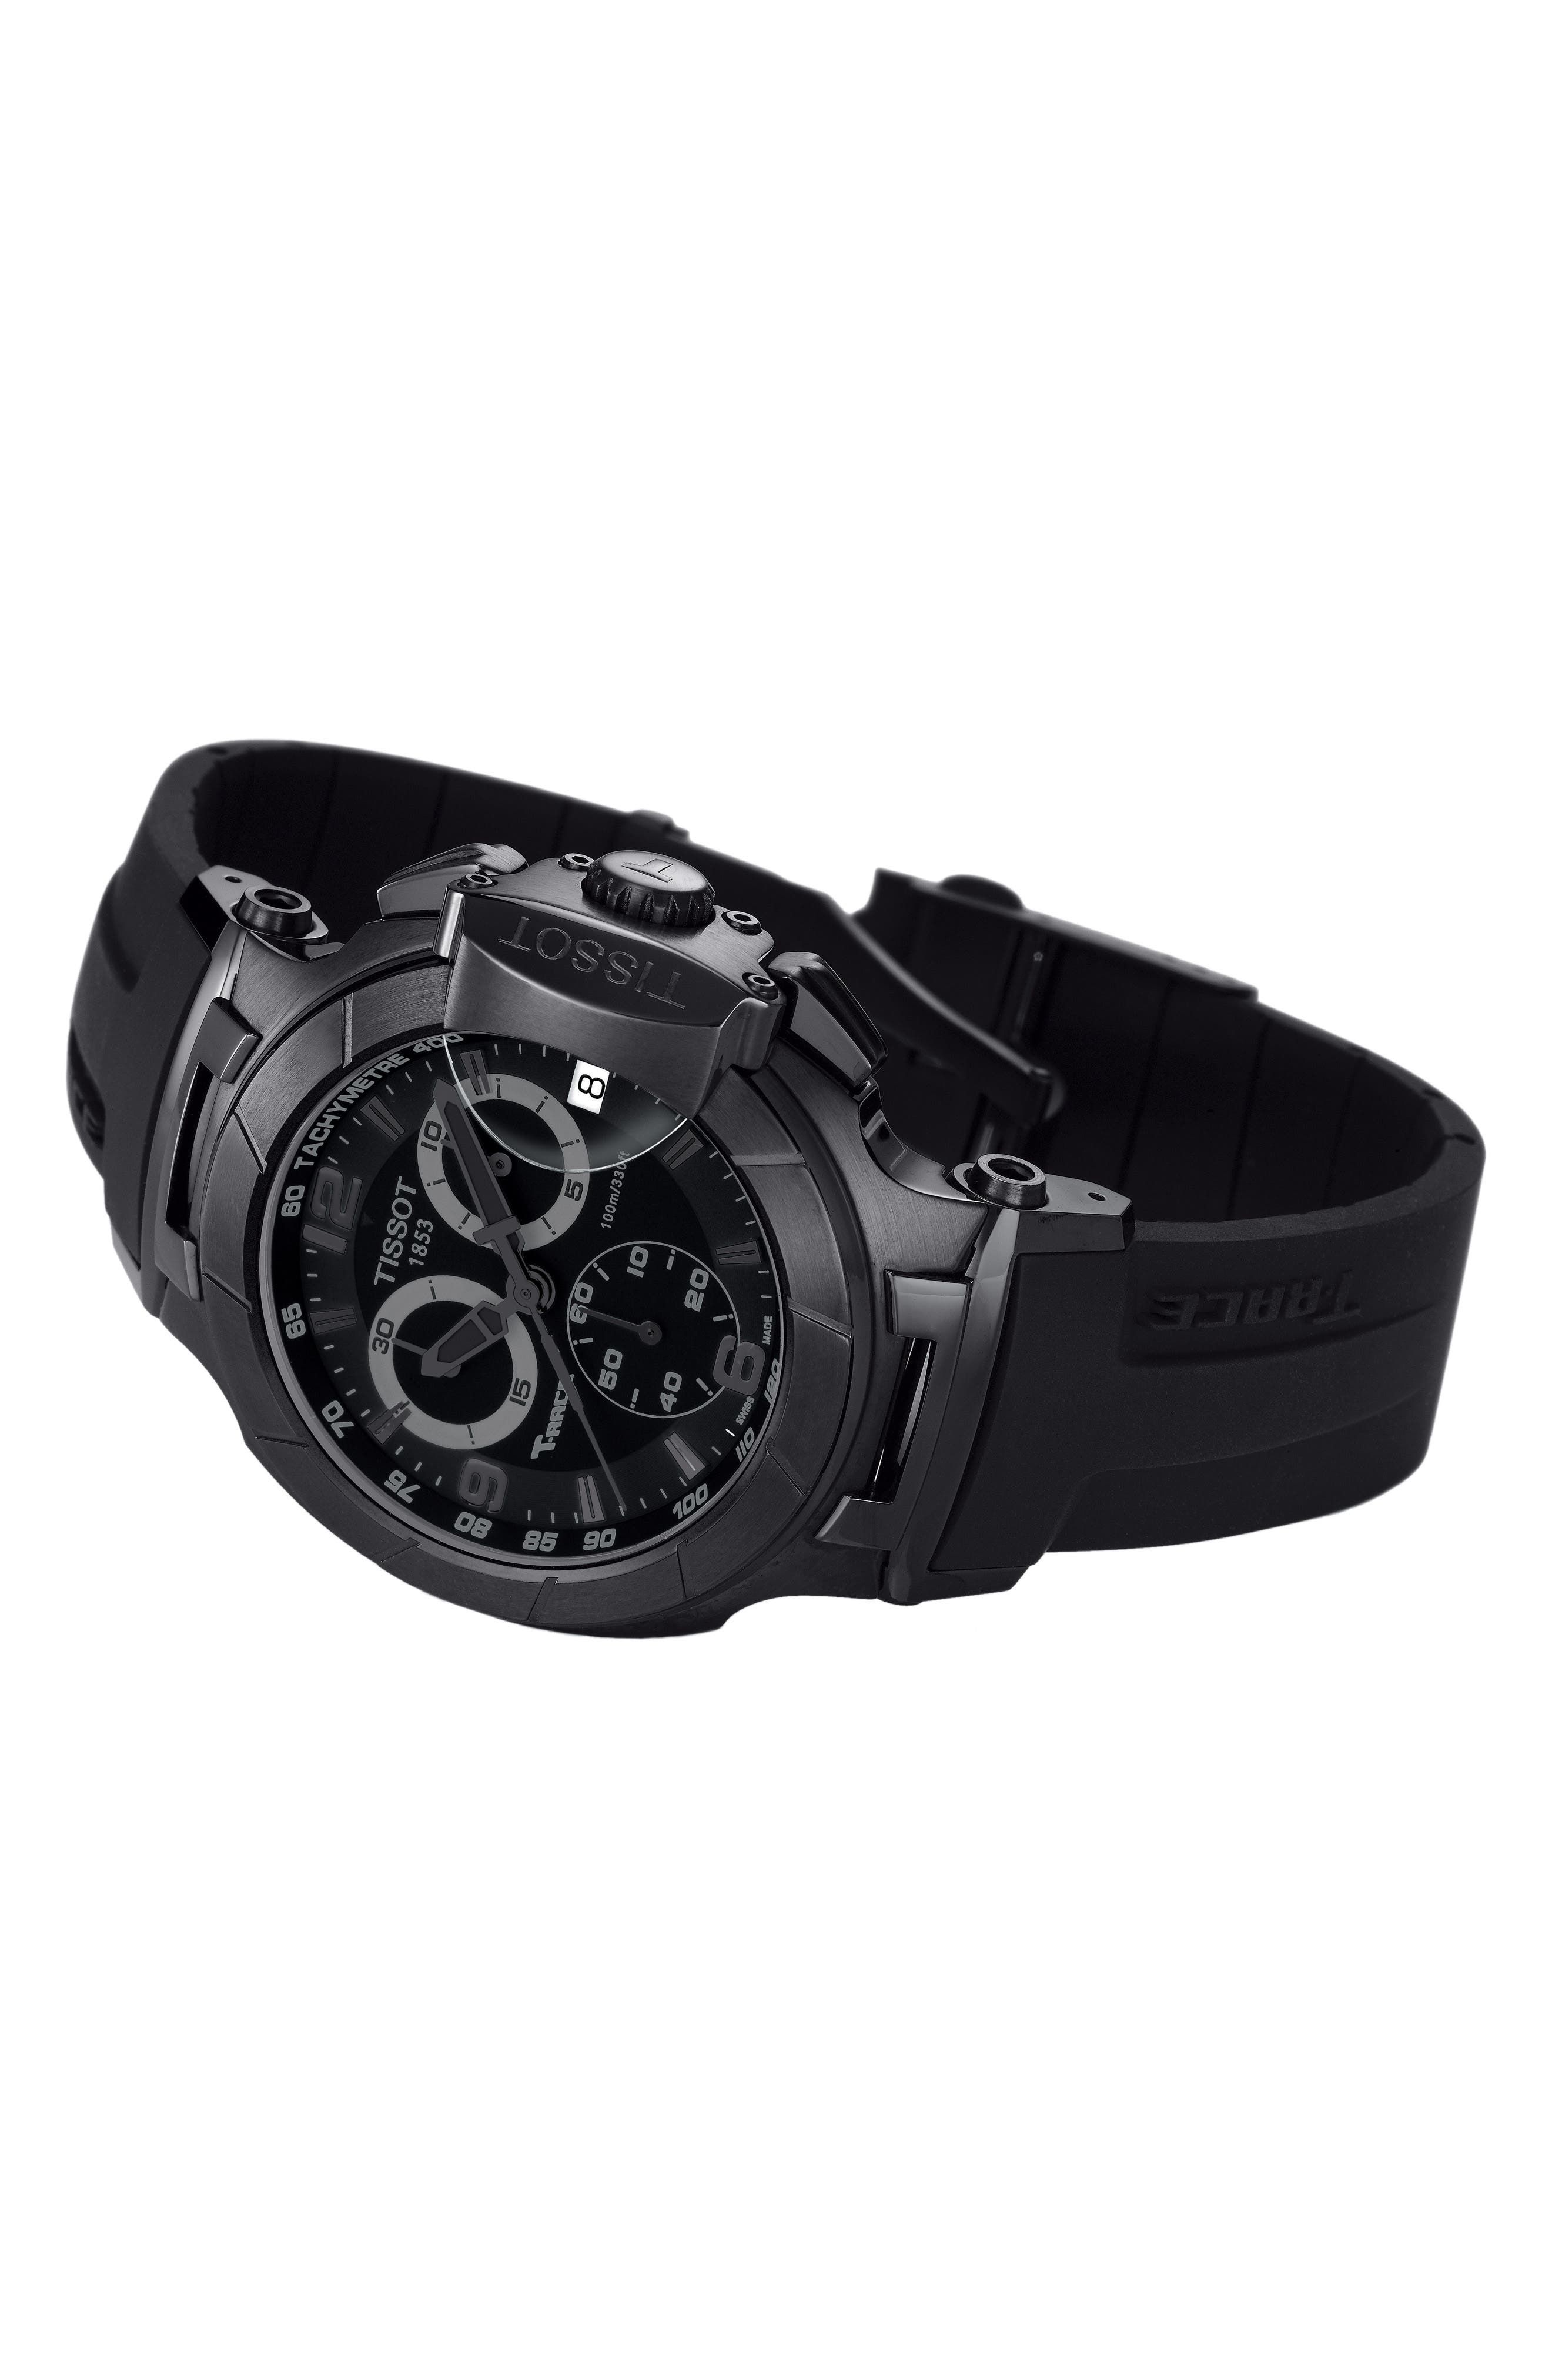 Alternate Image 2  - Tissot T-Race Chronograph Silicone Strap Watch, 50mm